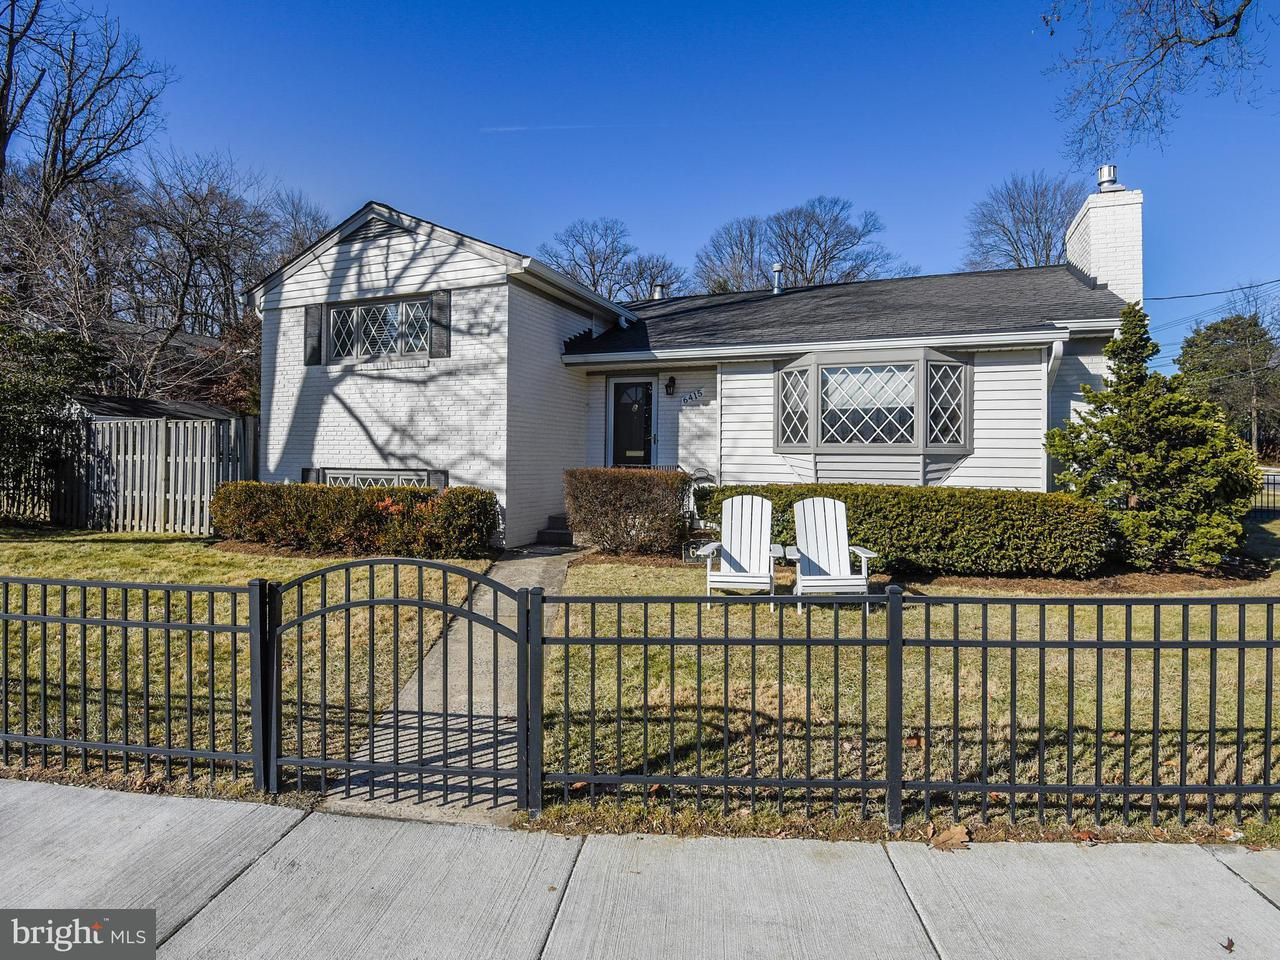 Single Family Home for Sale at 6415 24th St N 6415 24th St N Arlington, Virginia 22207 United States